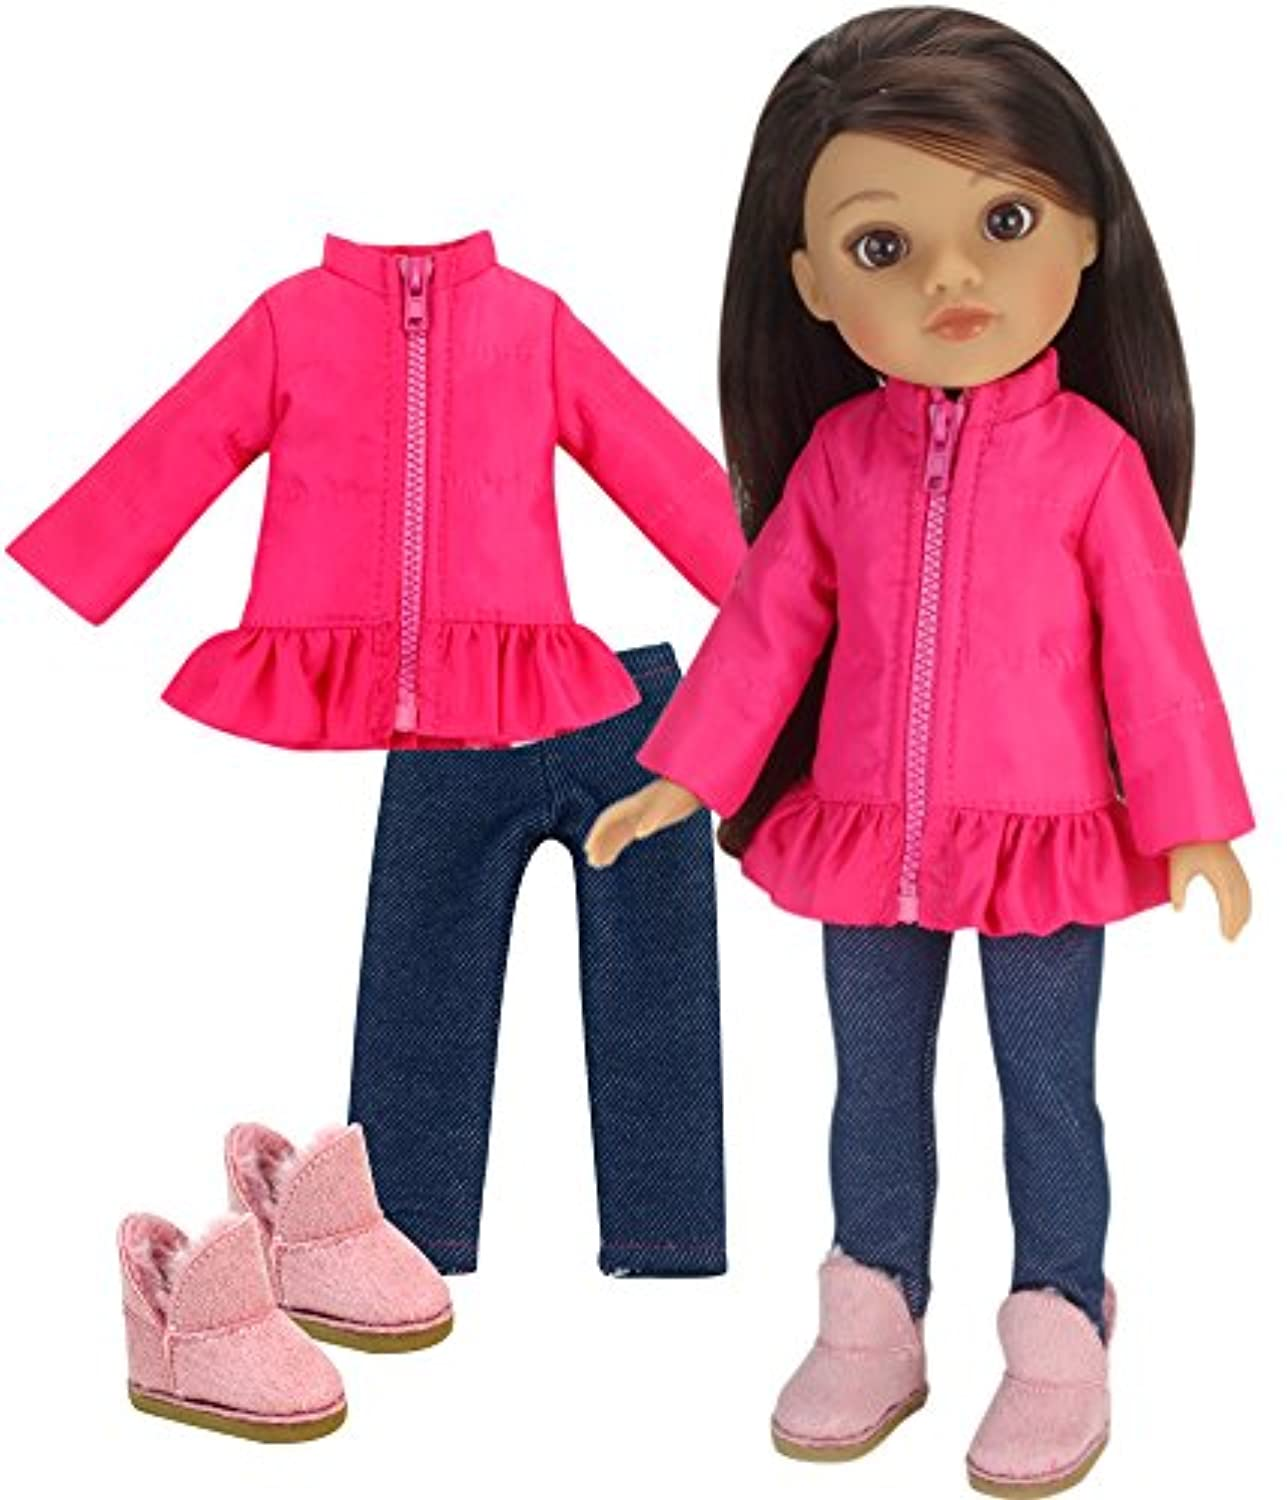 36cm Doll Clothes Outfit by Sophia's Hot Pink Puffy Coat, Jeggings & Doll Boots Fits American Girl Wellie Wishers Dolls 37cm Doll 3 Piece Set